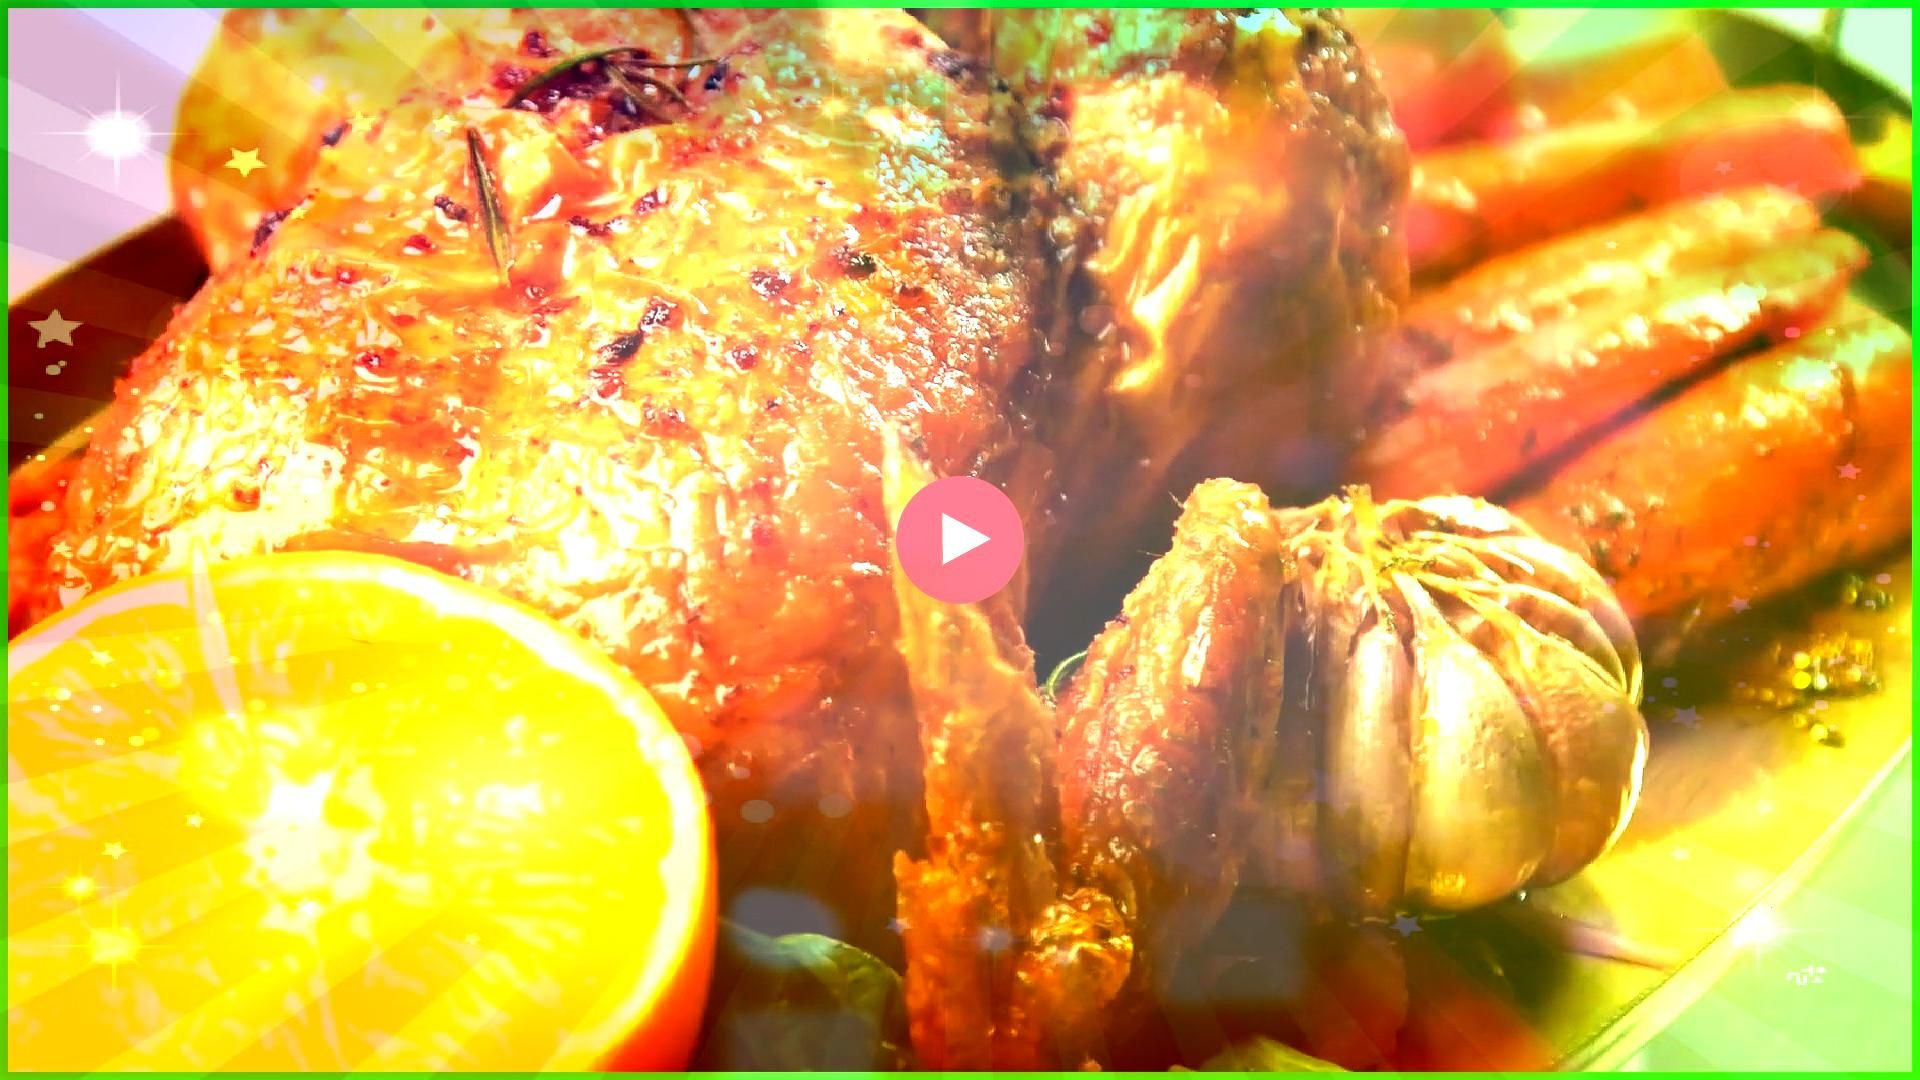 VIDEO judy and nelson horn Judy and Nelson Horn Greater Palm Springs Realtors share the video THANKSGIVING quote with you Please share but leave logo intact when you do C...